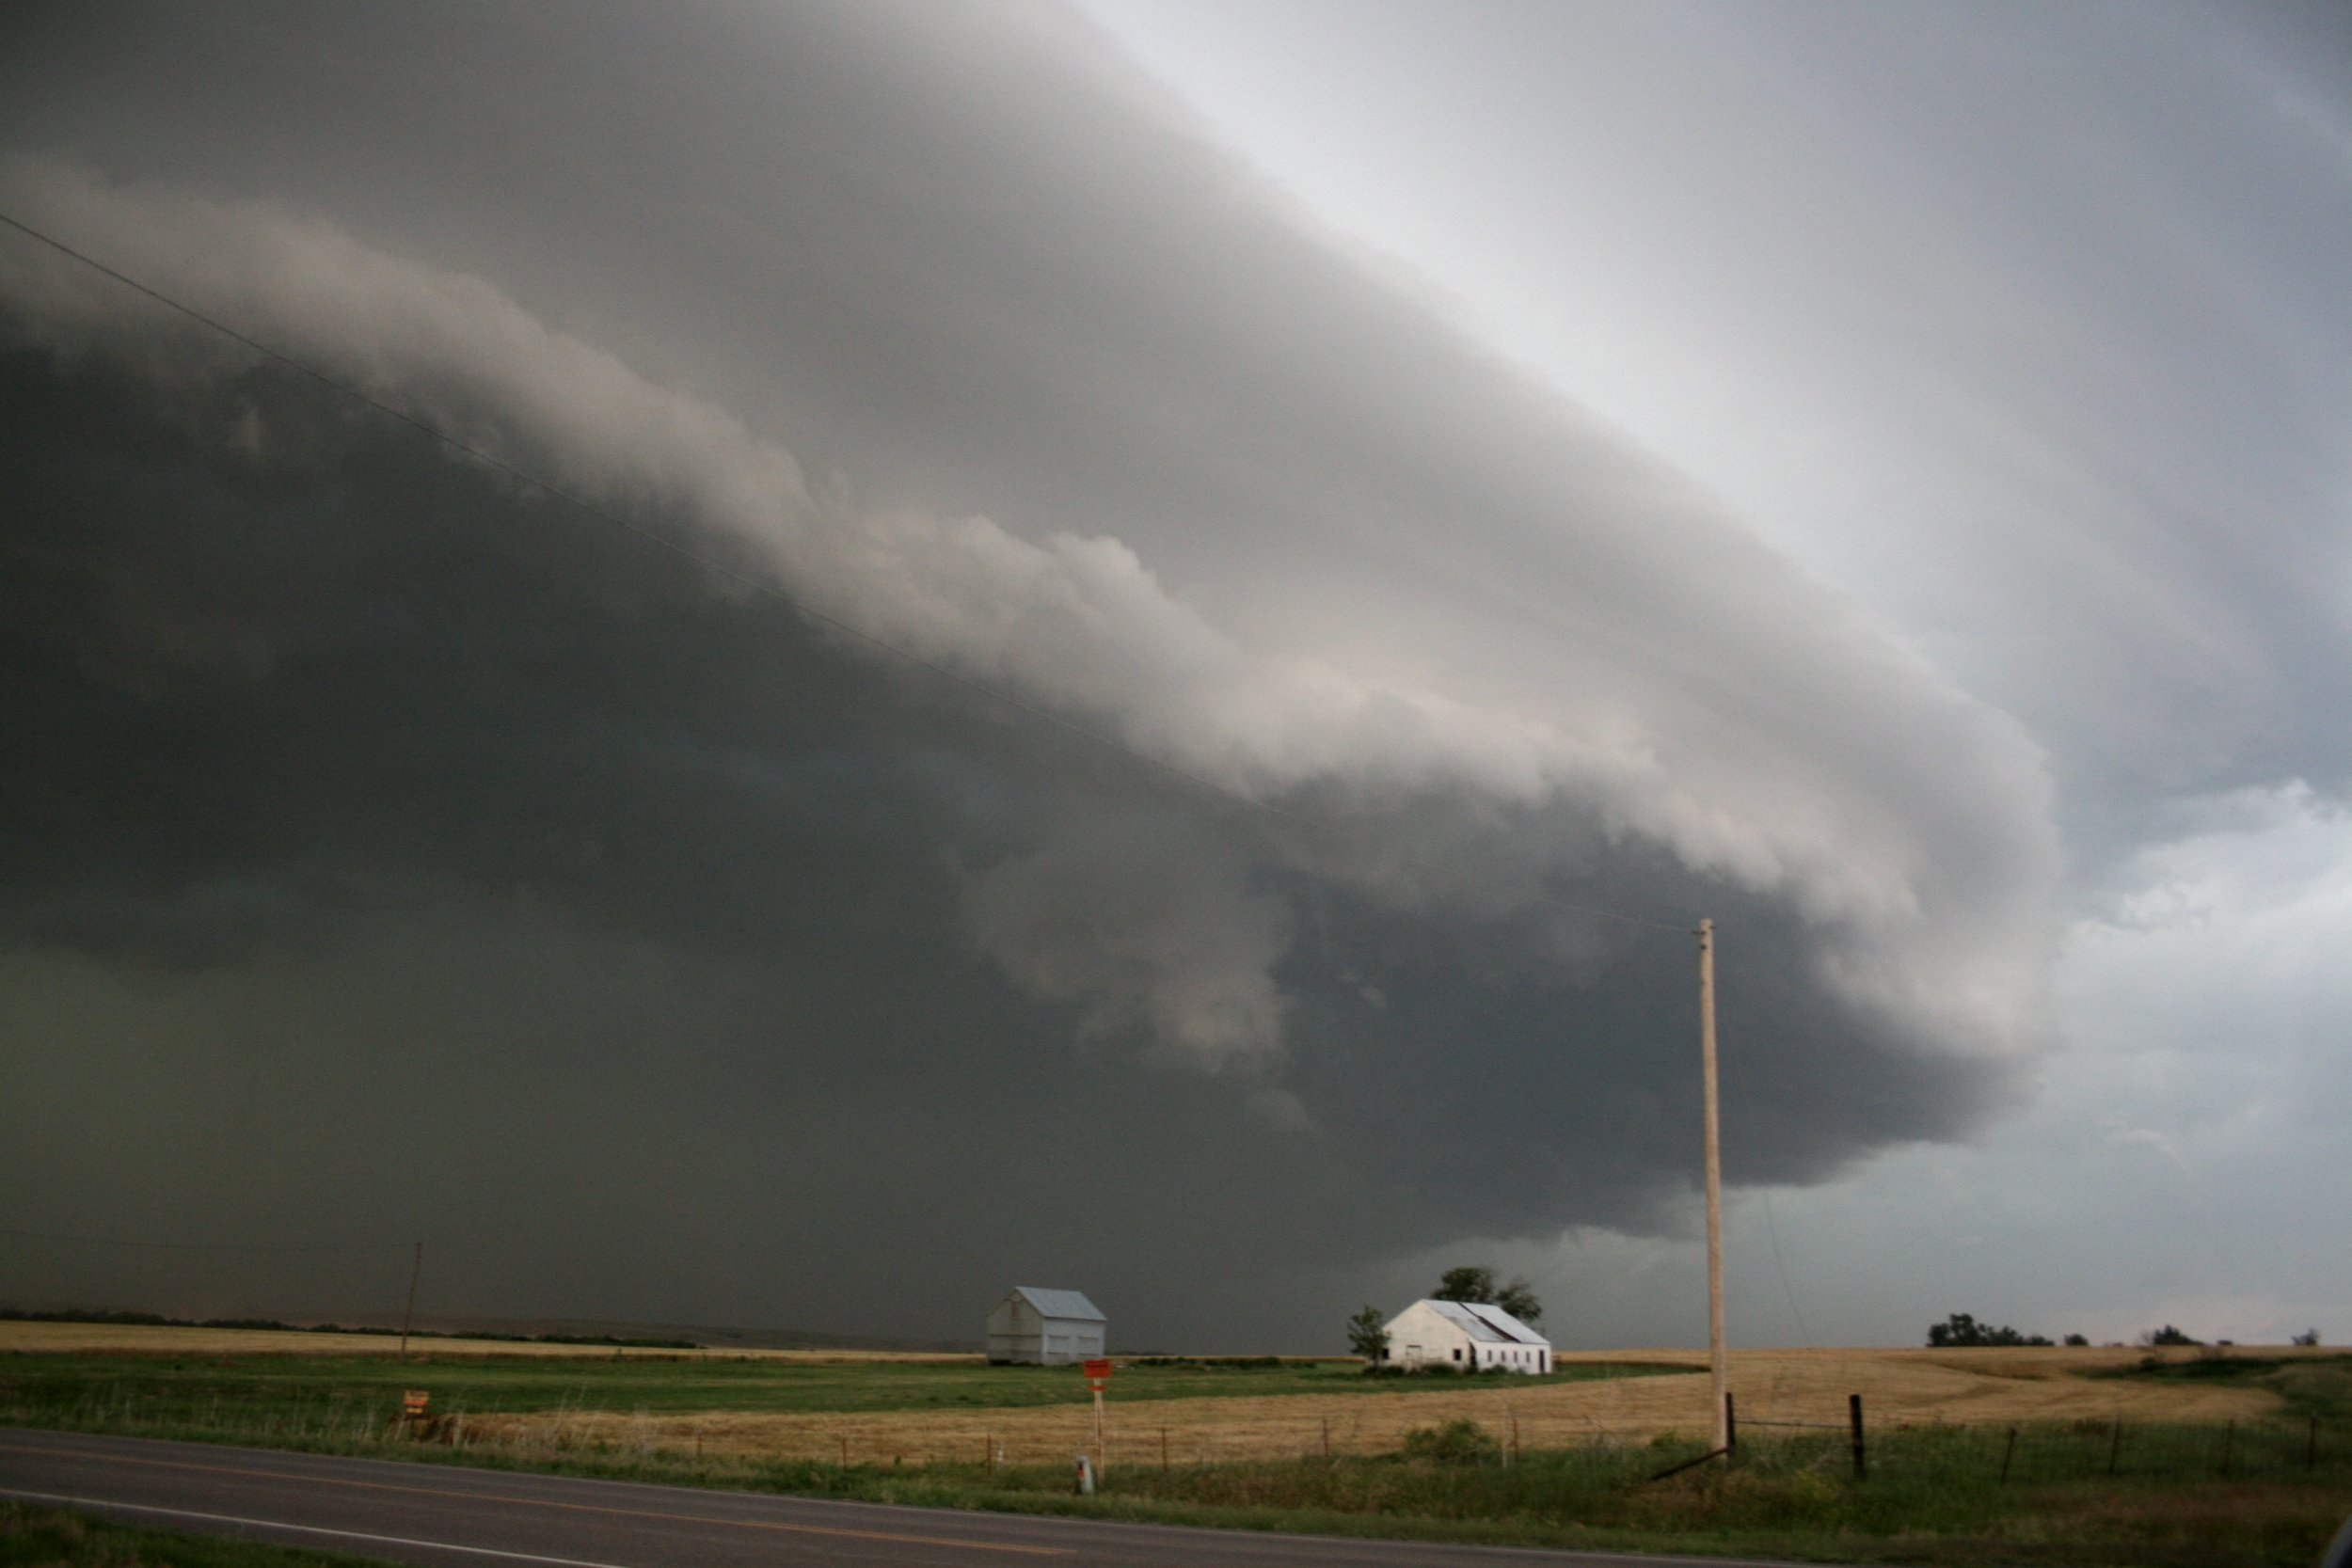 Weather can change dramatically within a short distance. Forecasters need data from more places than their sensor networks cover. Credit:  Sean Waugh NOAA/NSSL